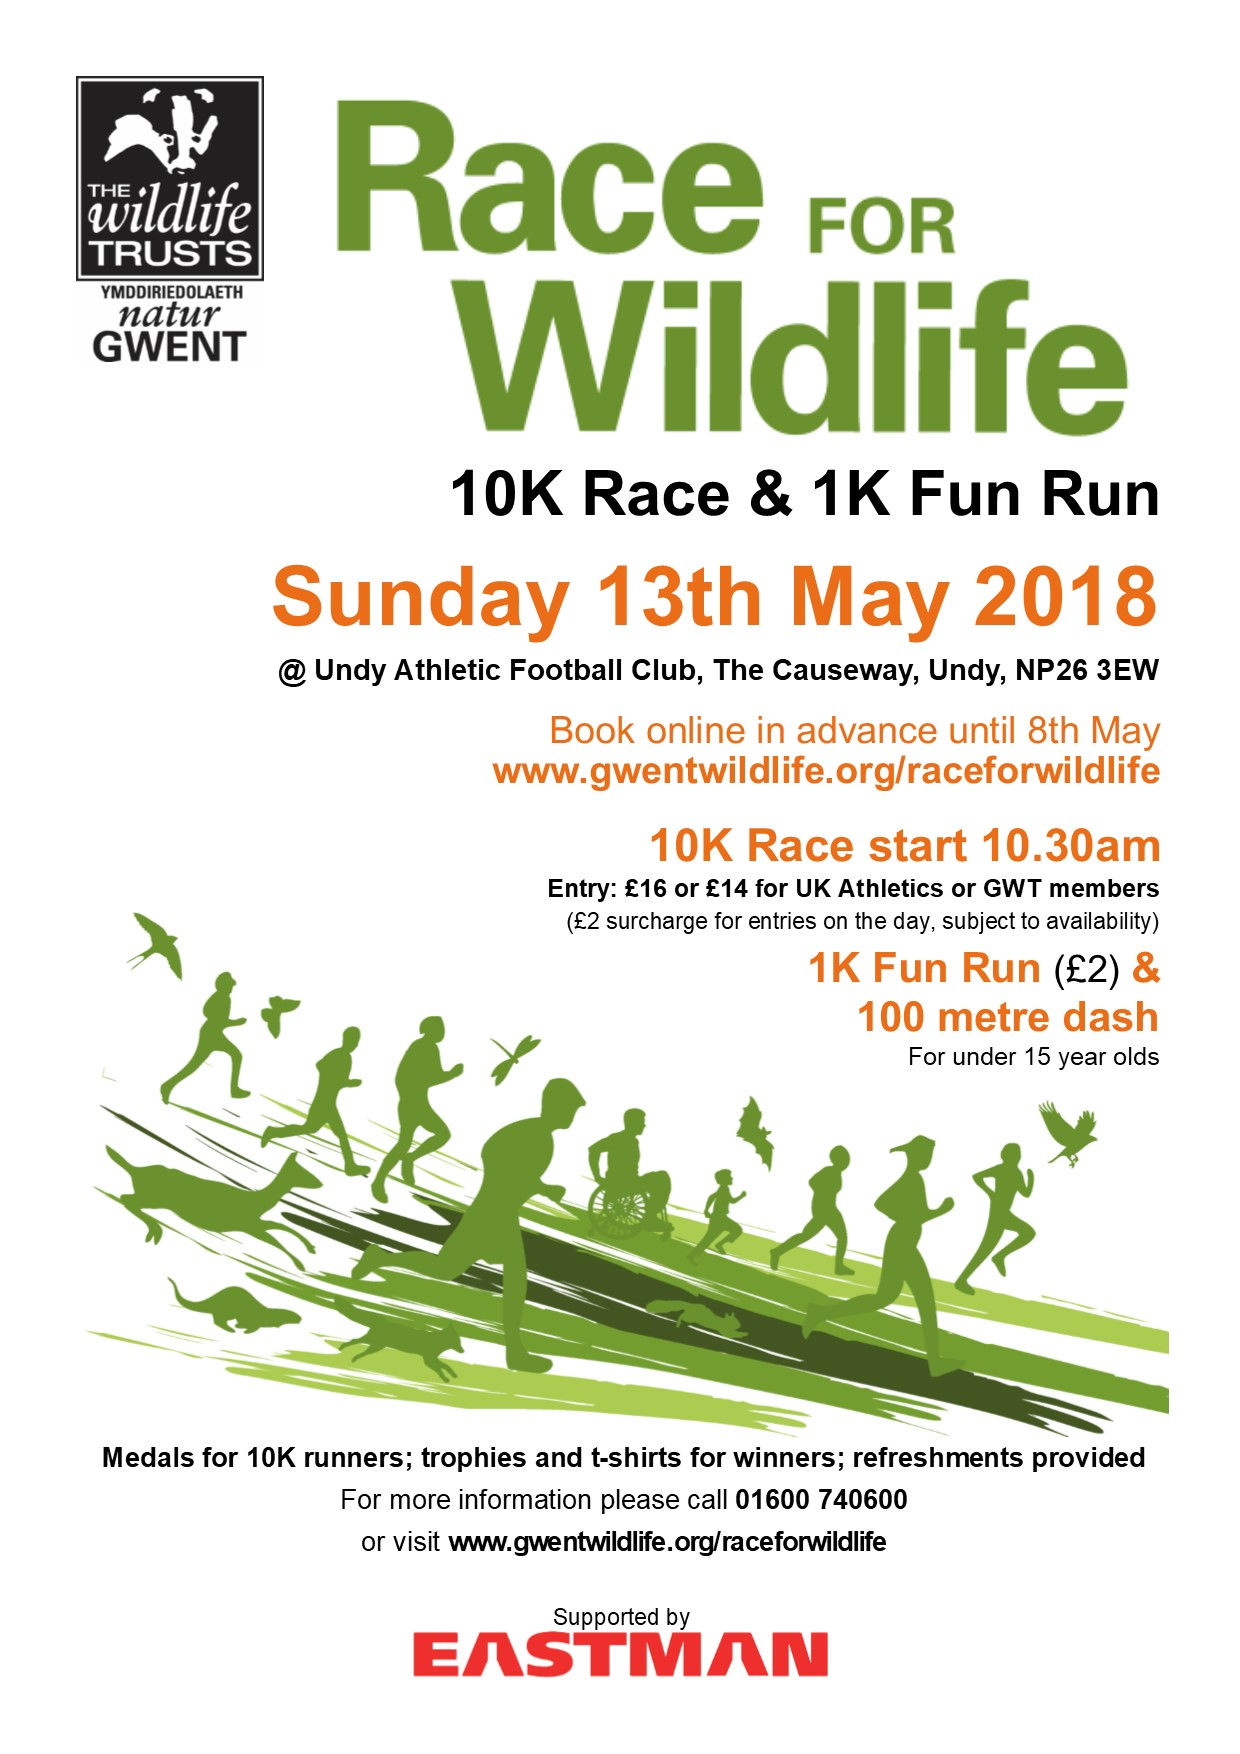 Race for Wildlife 2018